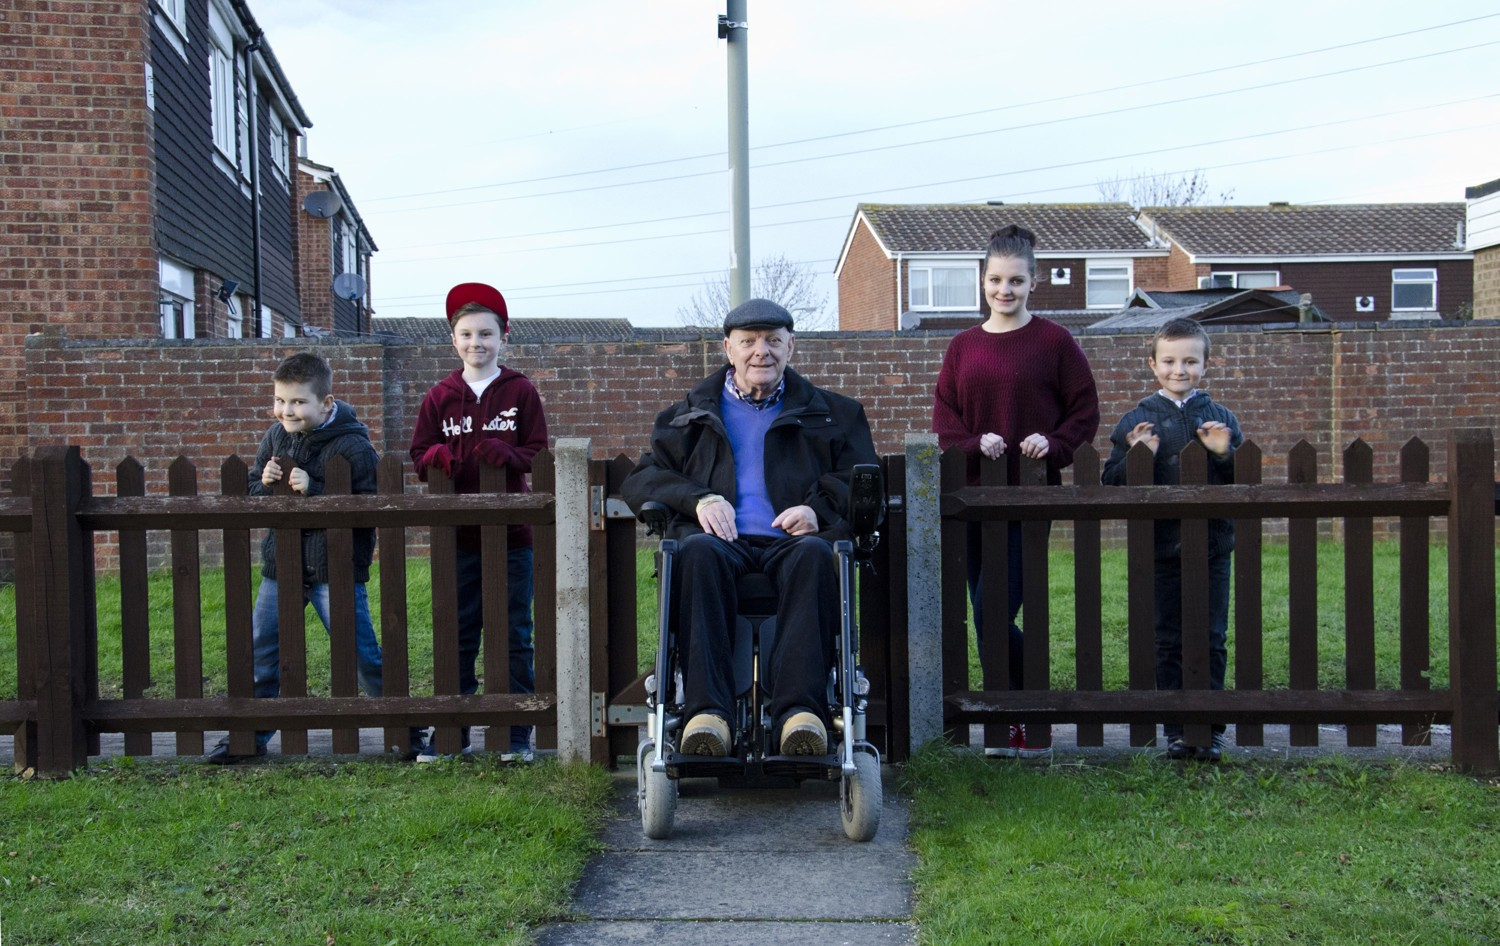 Richard in his wheelchair flanked by four of his grandchildren